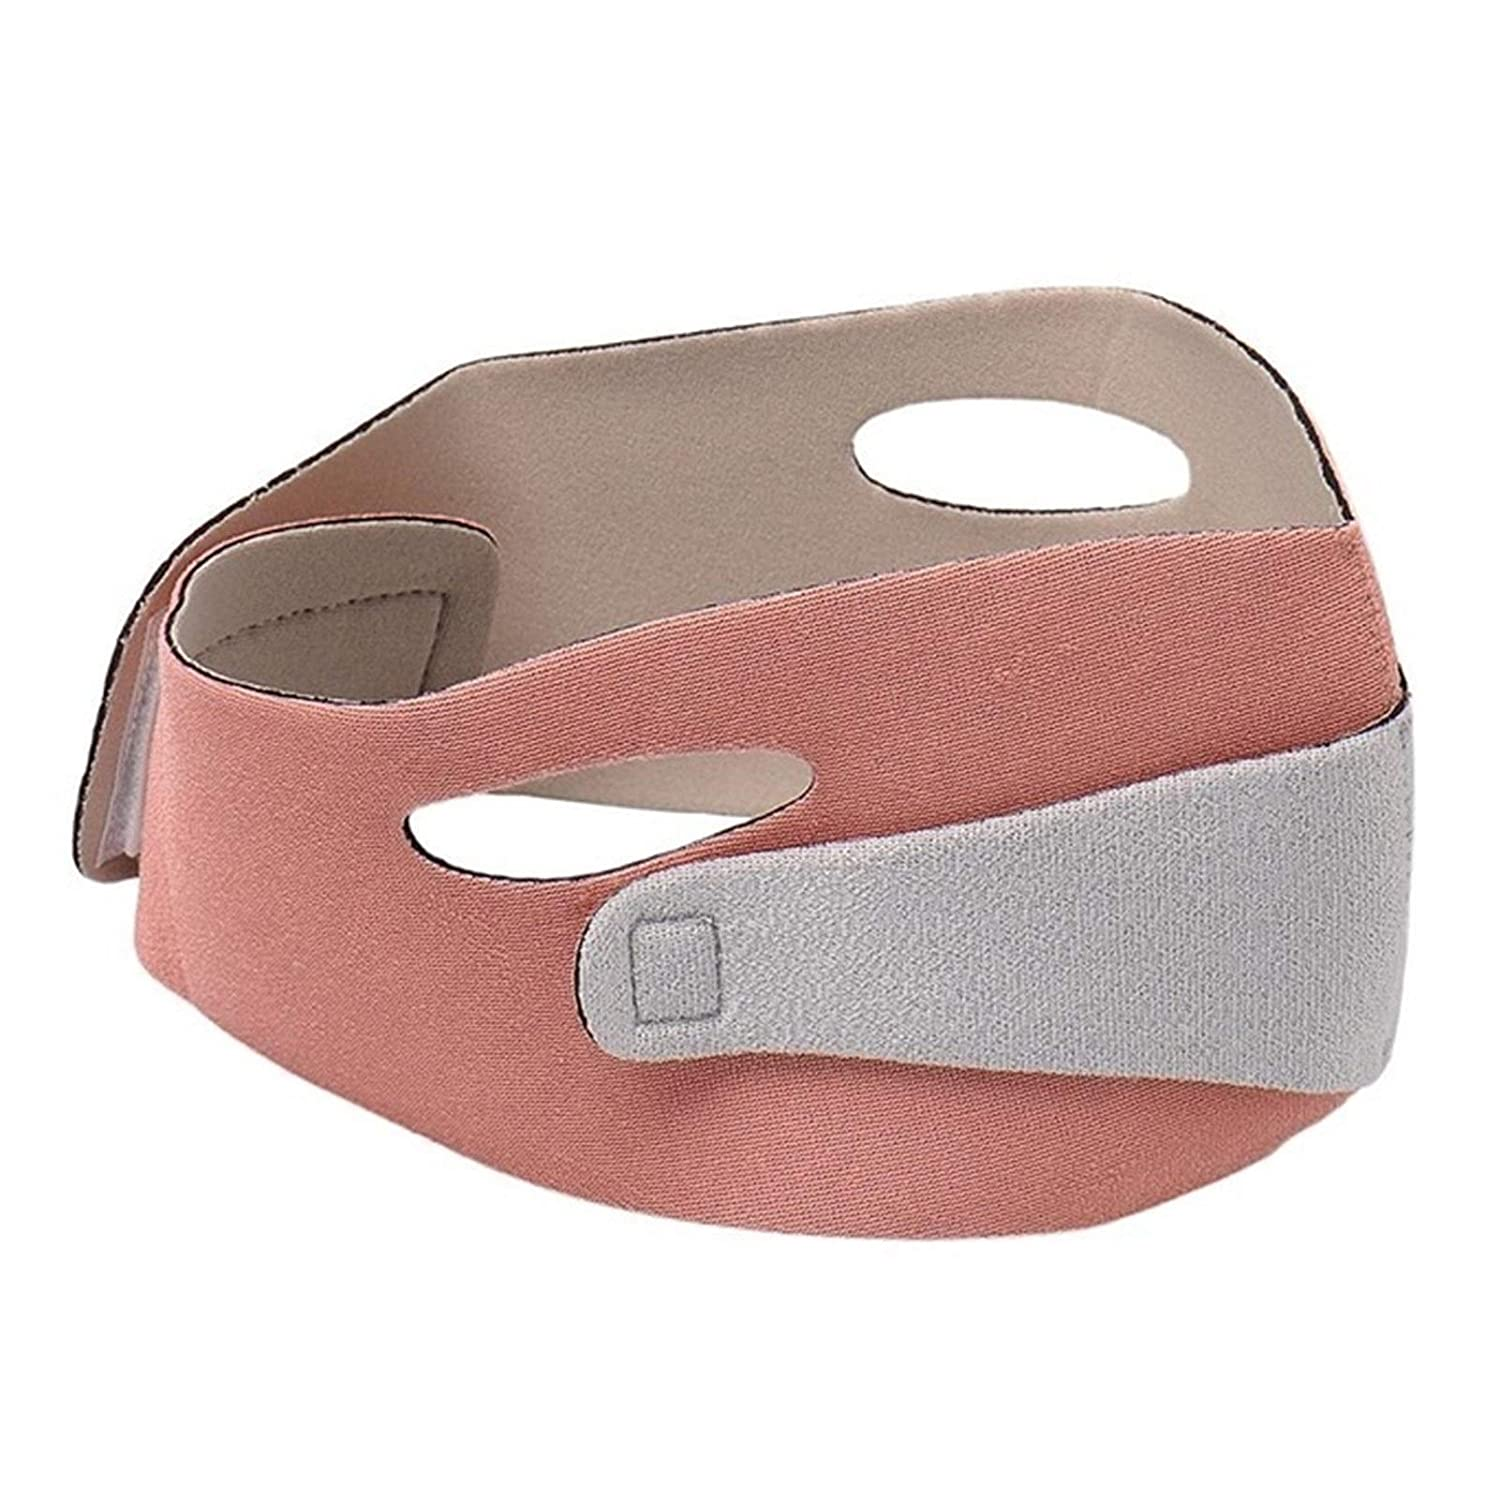 Department store Face Lifting Belt V All items in the store Removal Lift Up Slimming